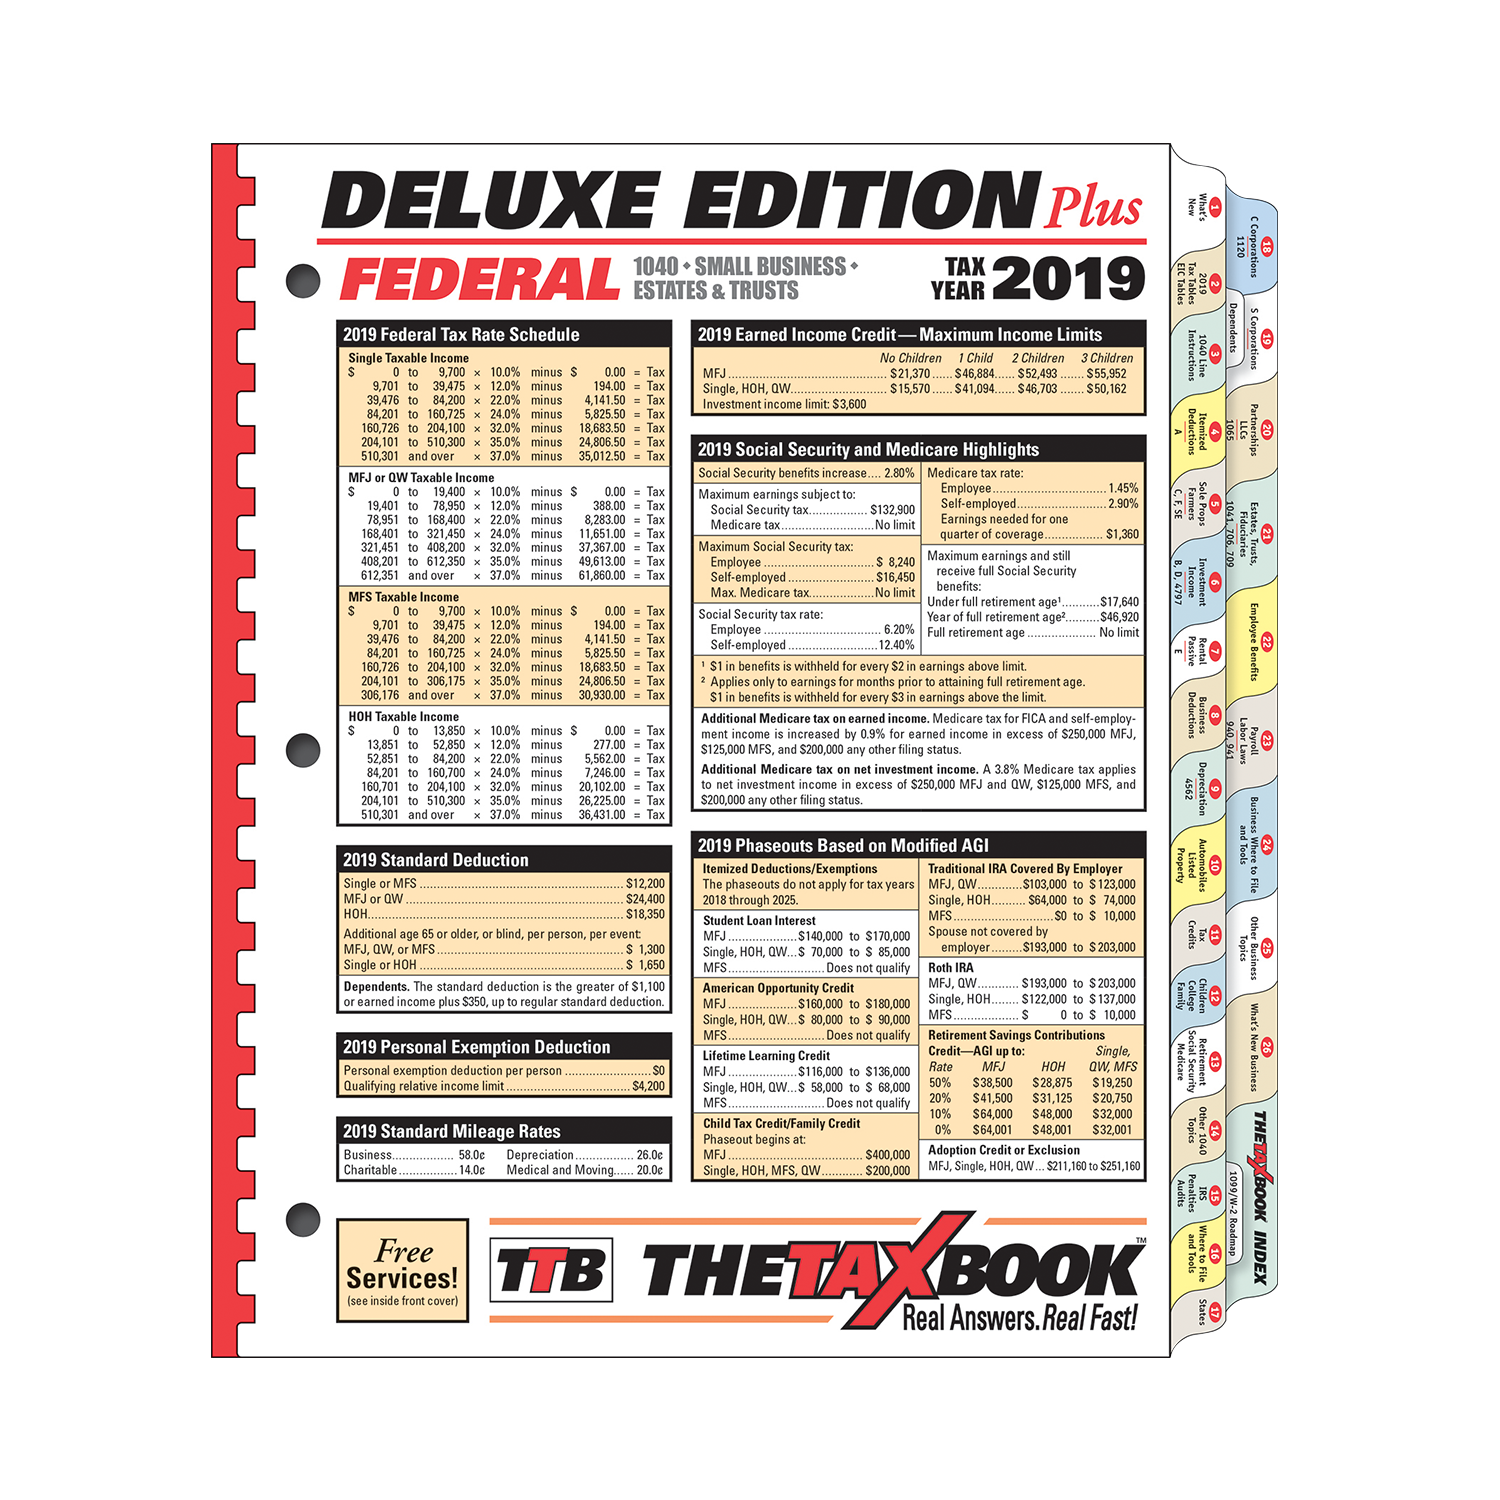 TheTaxBook Deluxe Edition Plus Fast Answer Tax Book (2019) - #3982